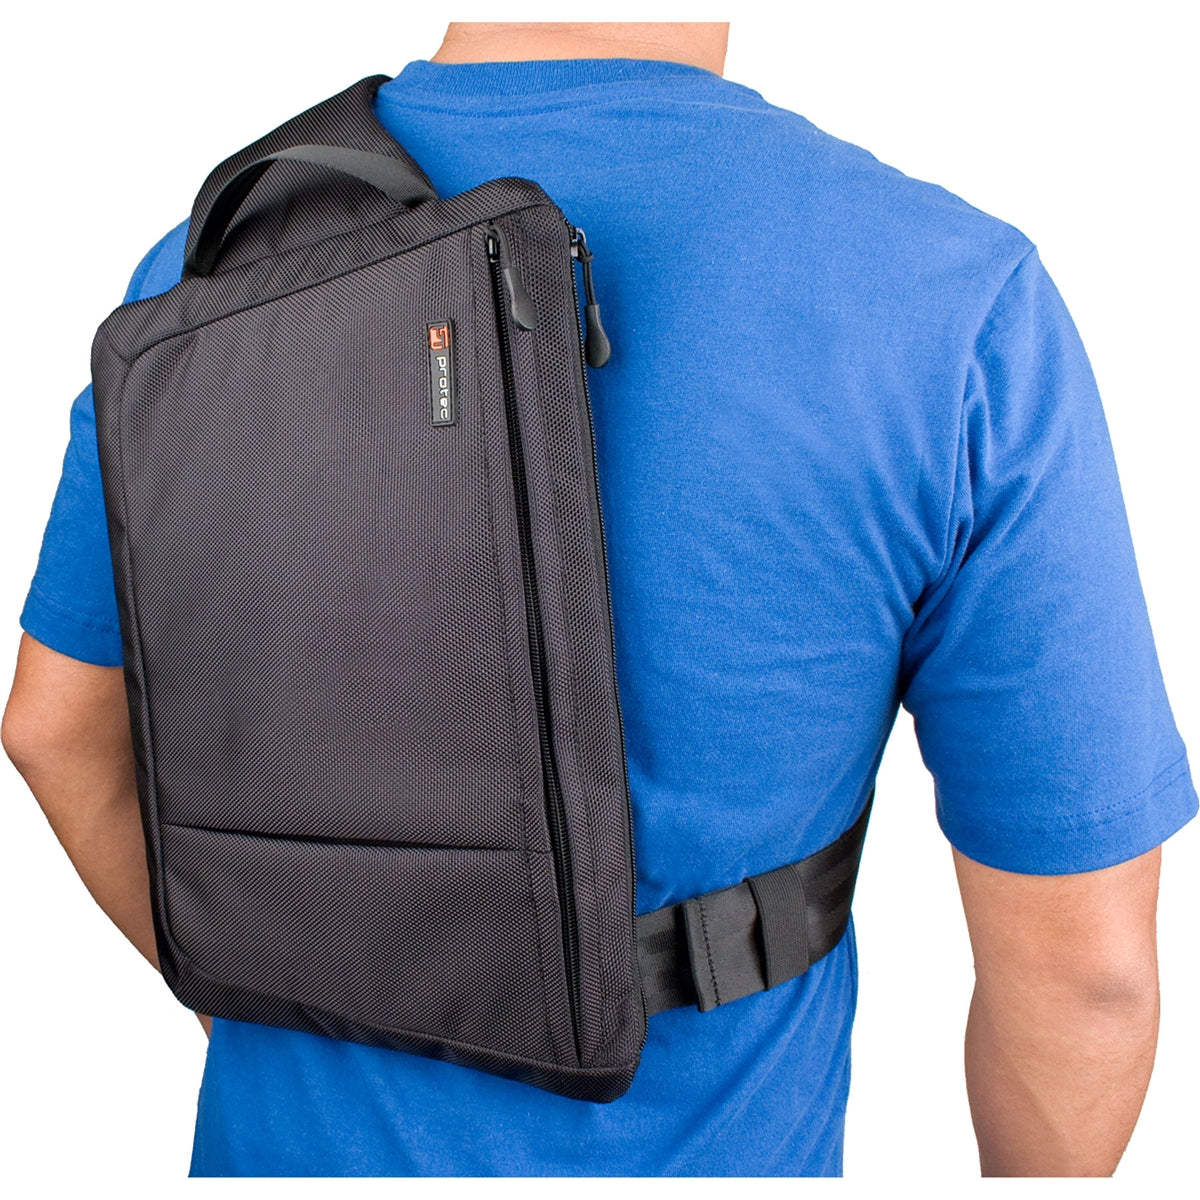 PROTEC ZIP iPad/Tablet Sling Bag